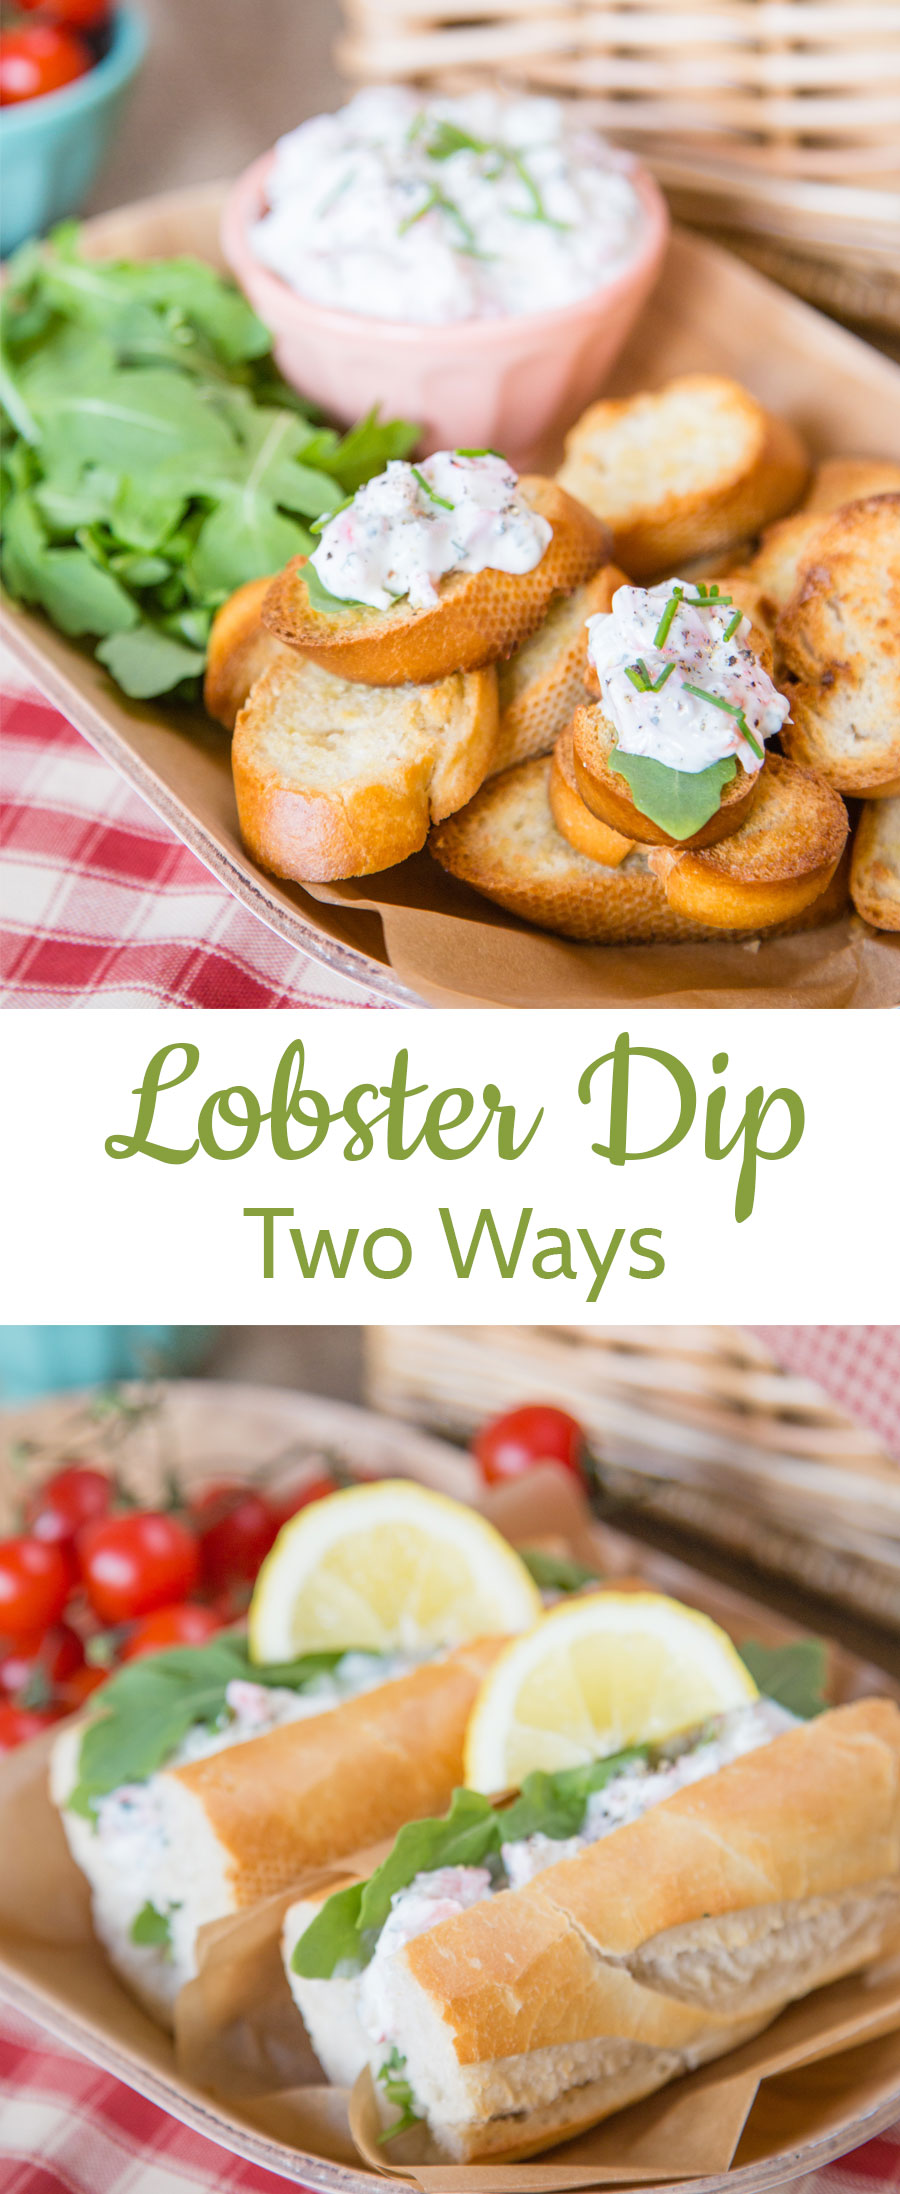 Enjoy this tasty, quick and easy lobster dip on crunchy crostini or in a baguette - perfect to take to picnics or BBQs